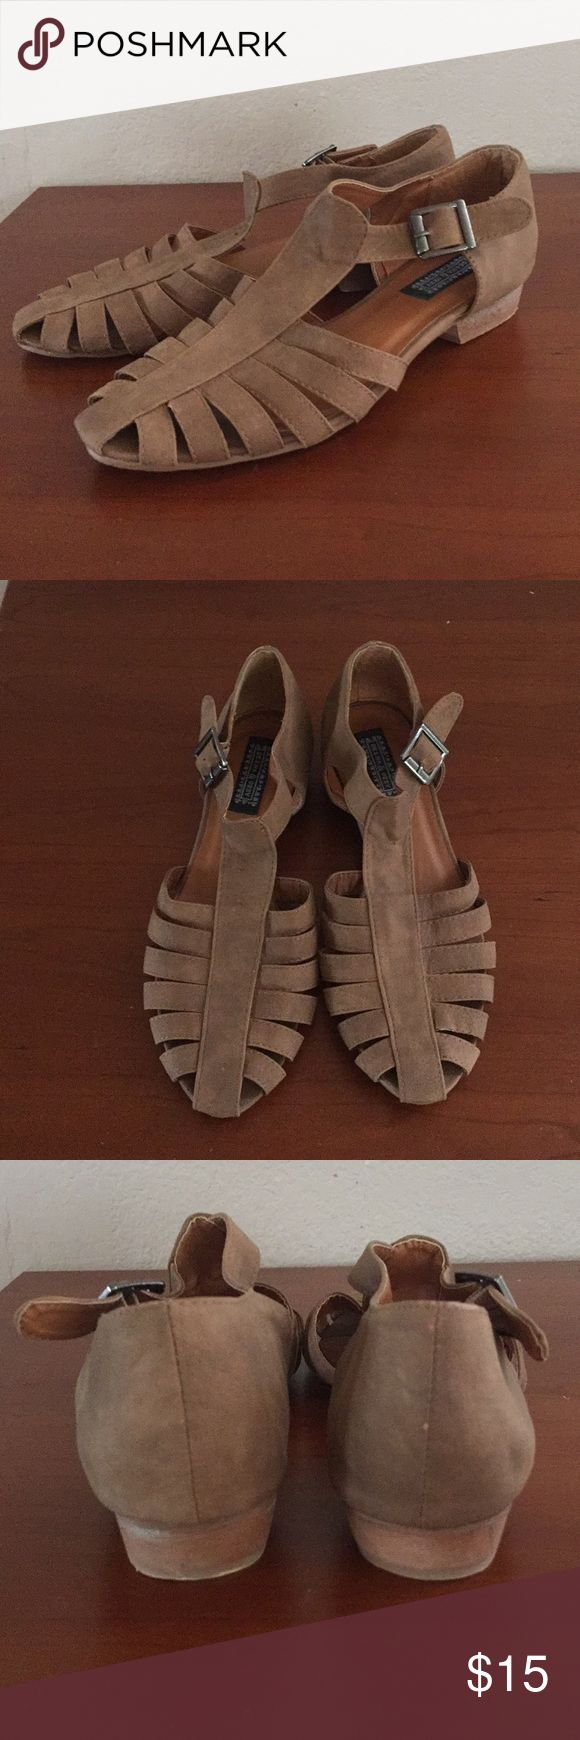 Urban Outfitters Deena & Ozzy Shoes Faux leather. Comfortable shoes. Size 8 Deena & Ozzy Shoes Sandals